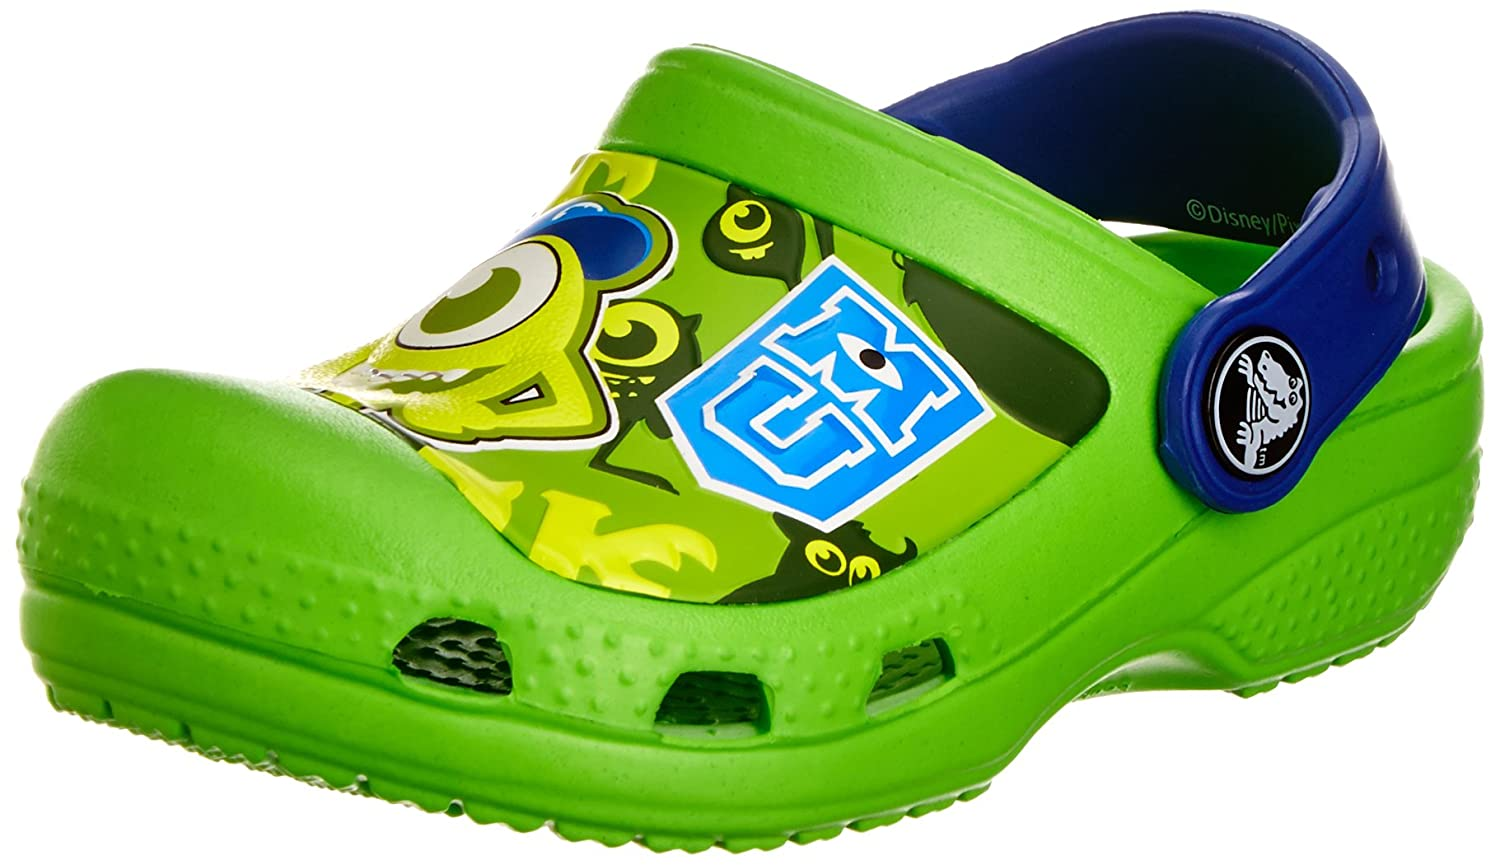 Crocs Boys' CC Monsters Clog Neon Green/Cerulean Blue 3 M US Little Kid 1025999